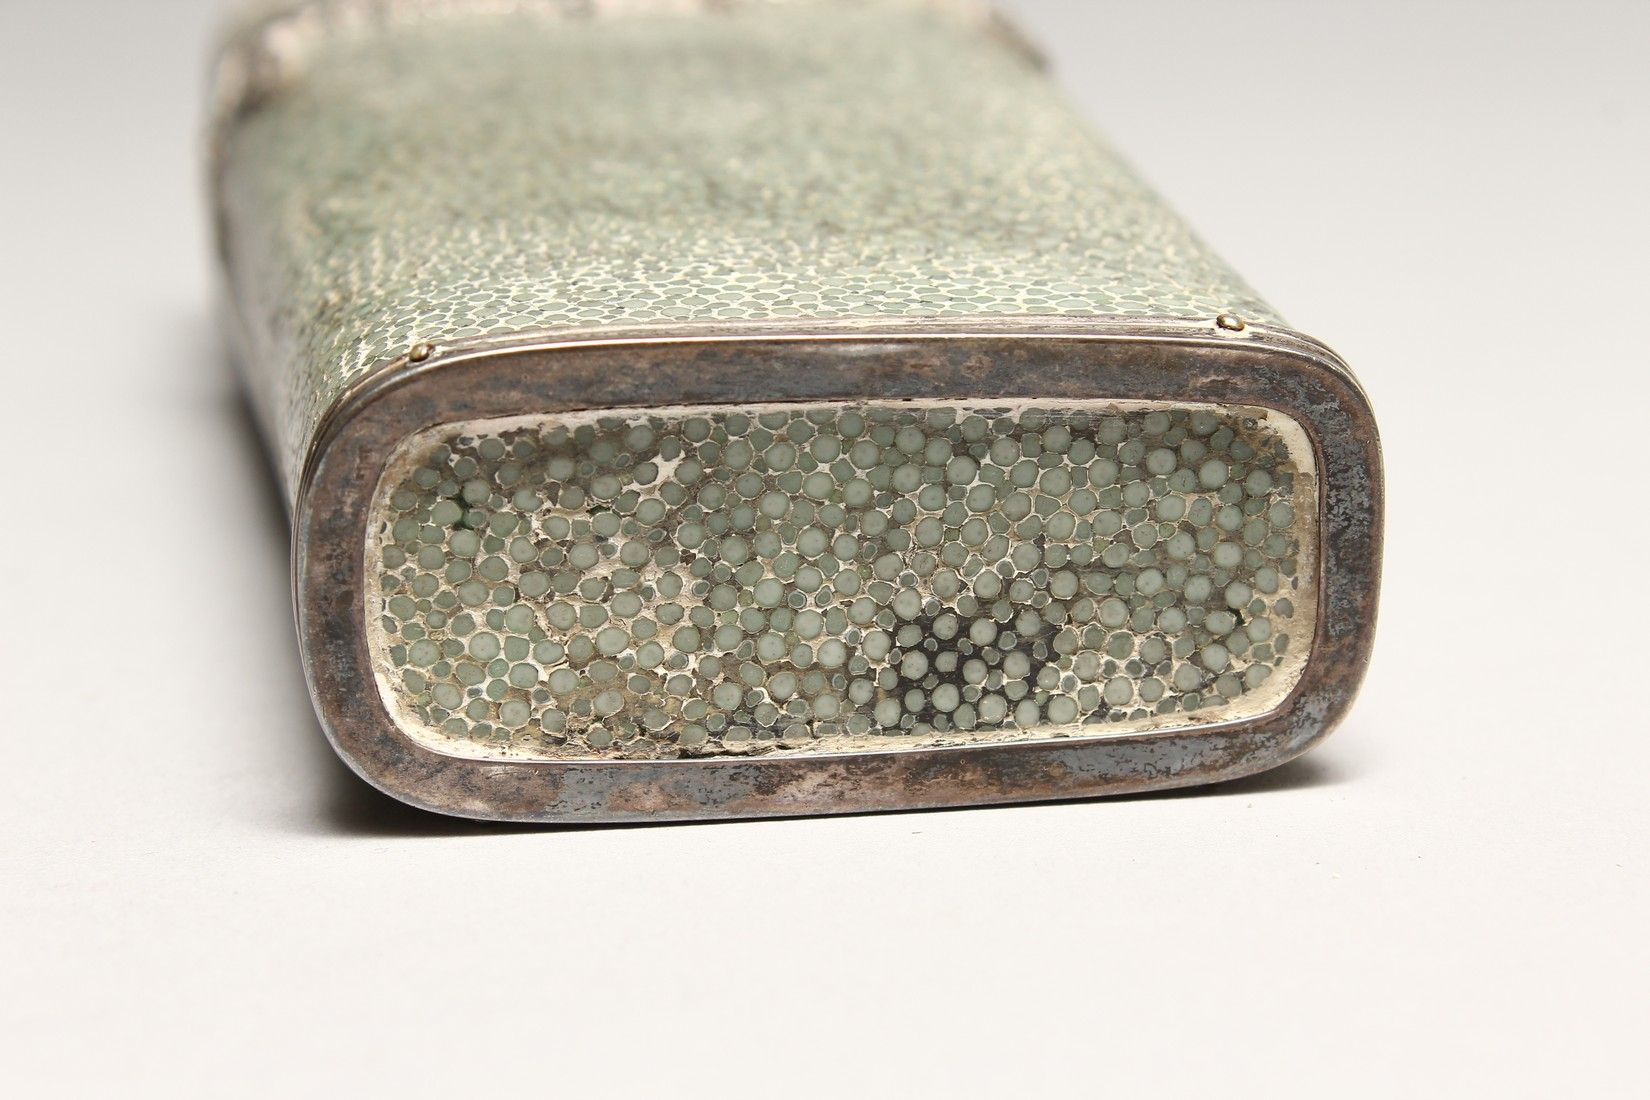 A GEORGIAN WHISKY FLASK in a shagreen case, with silver garlands 6.5ins long (some damage). - Image 7 of 8